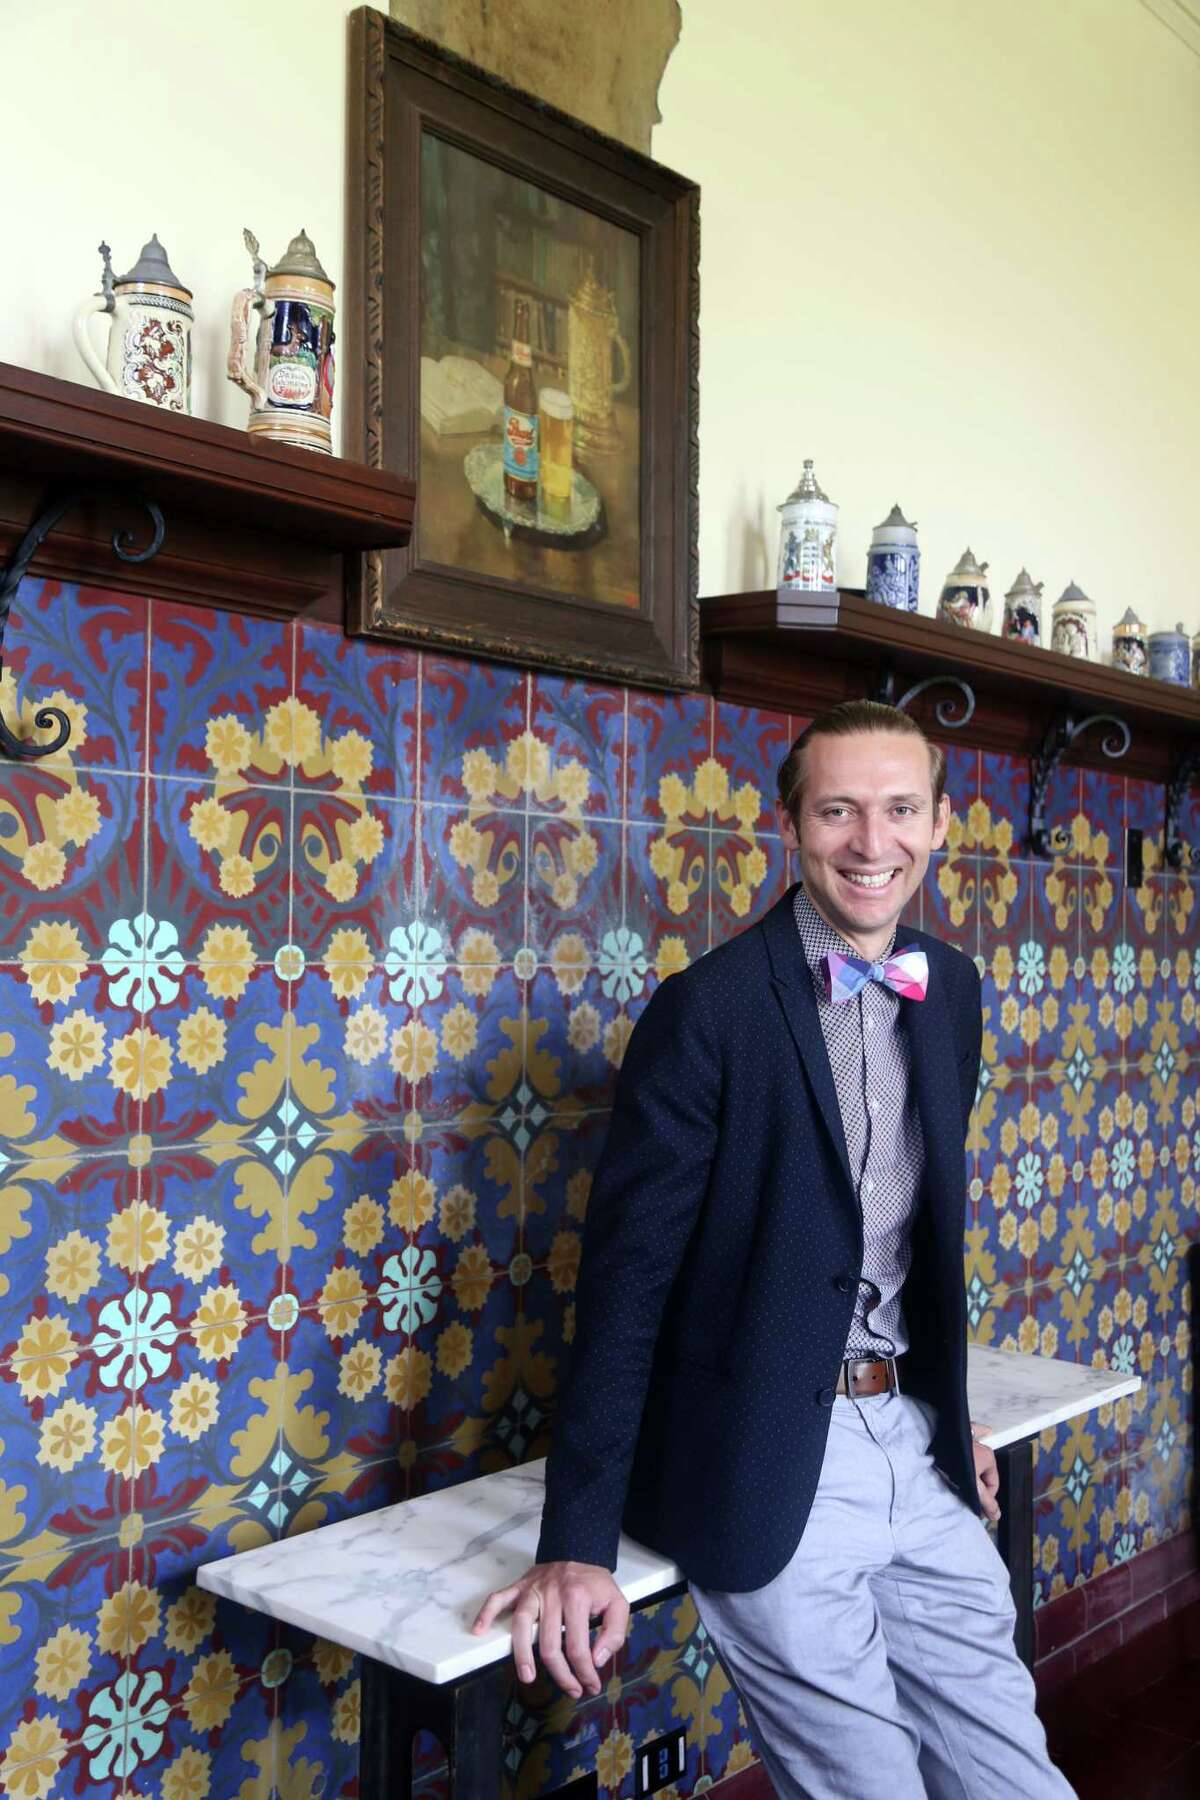 Andres Rizo is the culinary concierge at the Hotel Emma in San Antonio.